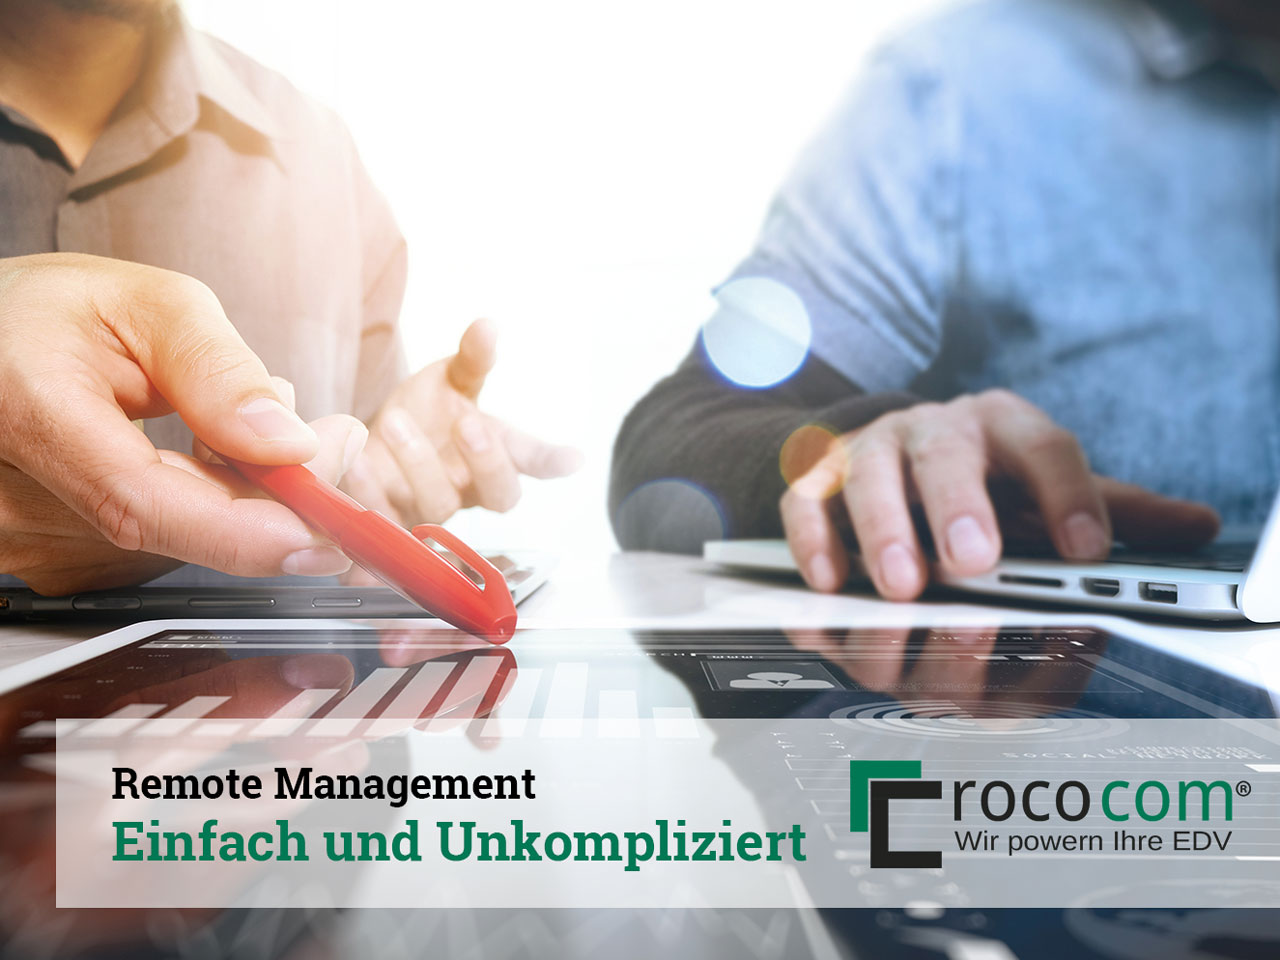 Remote Monitoring und Management mit rococom